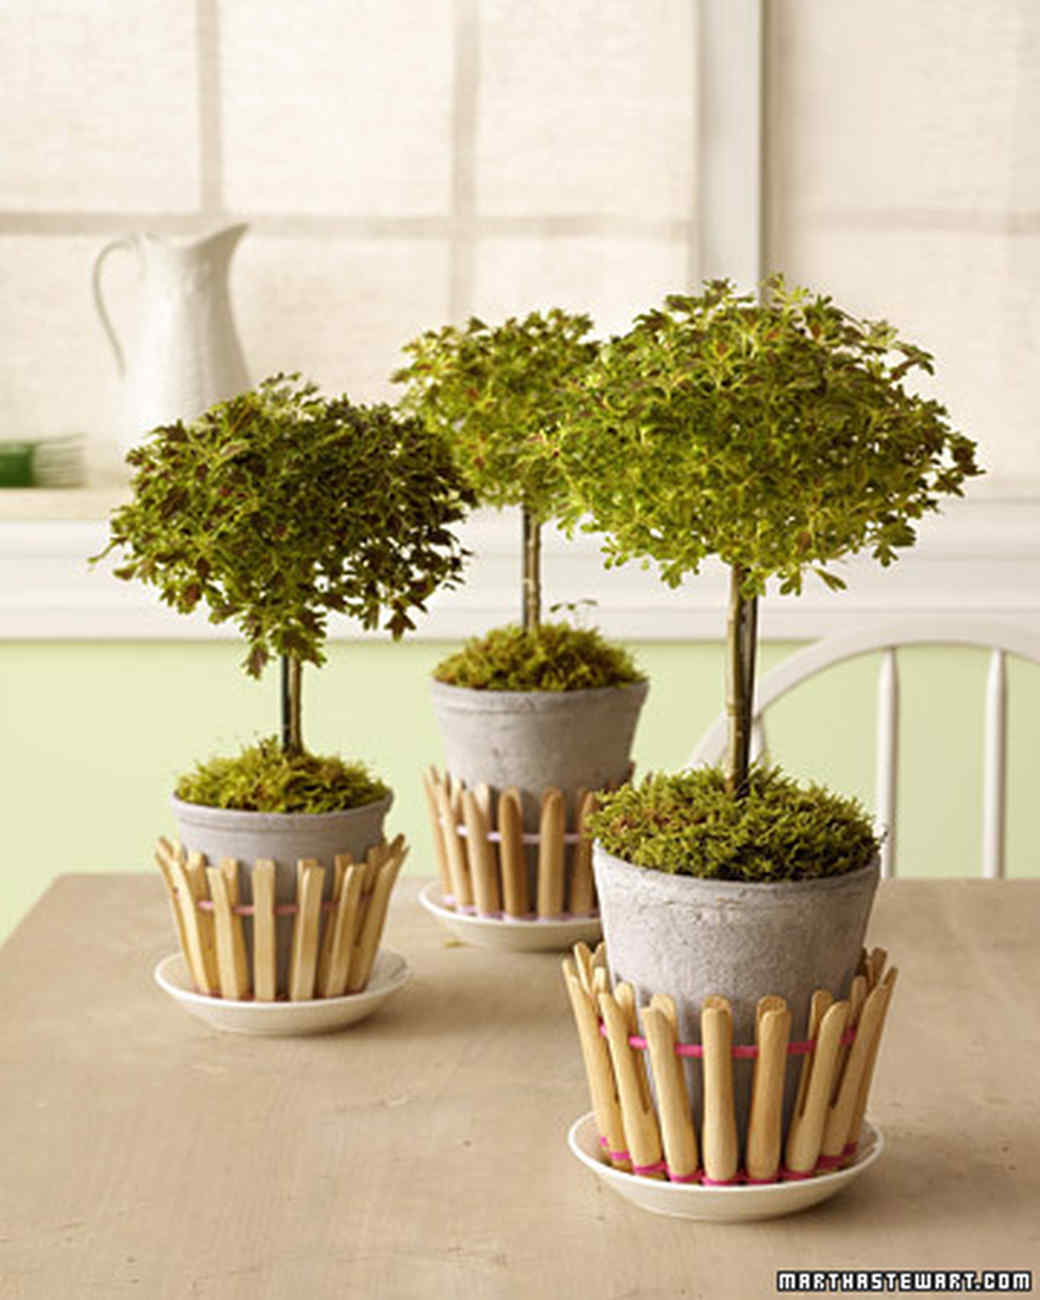 & Decorative Flowerpots and Planters | Martha Stewart